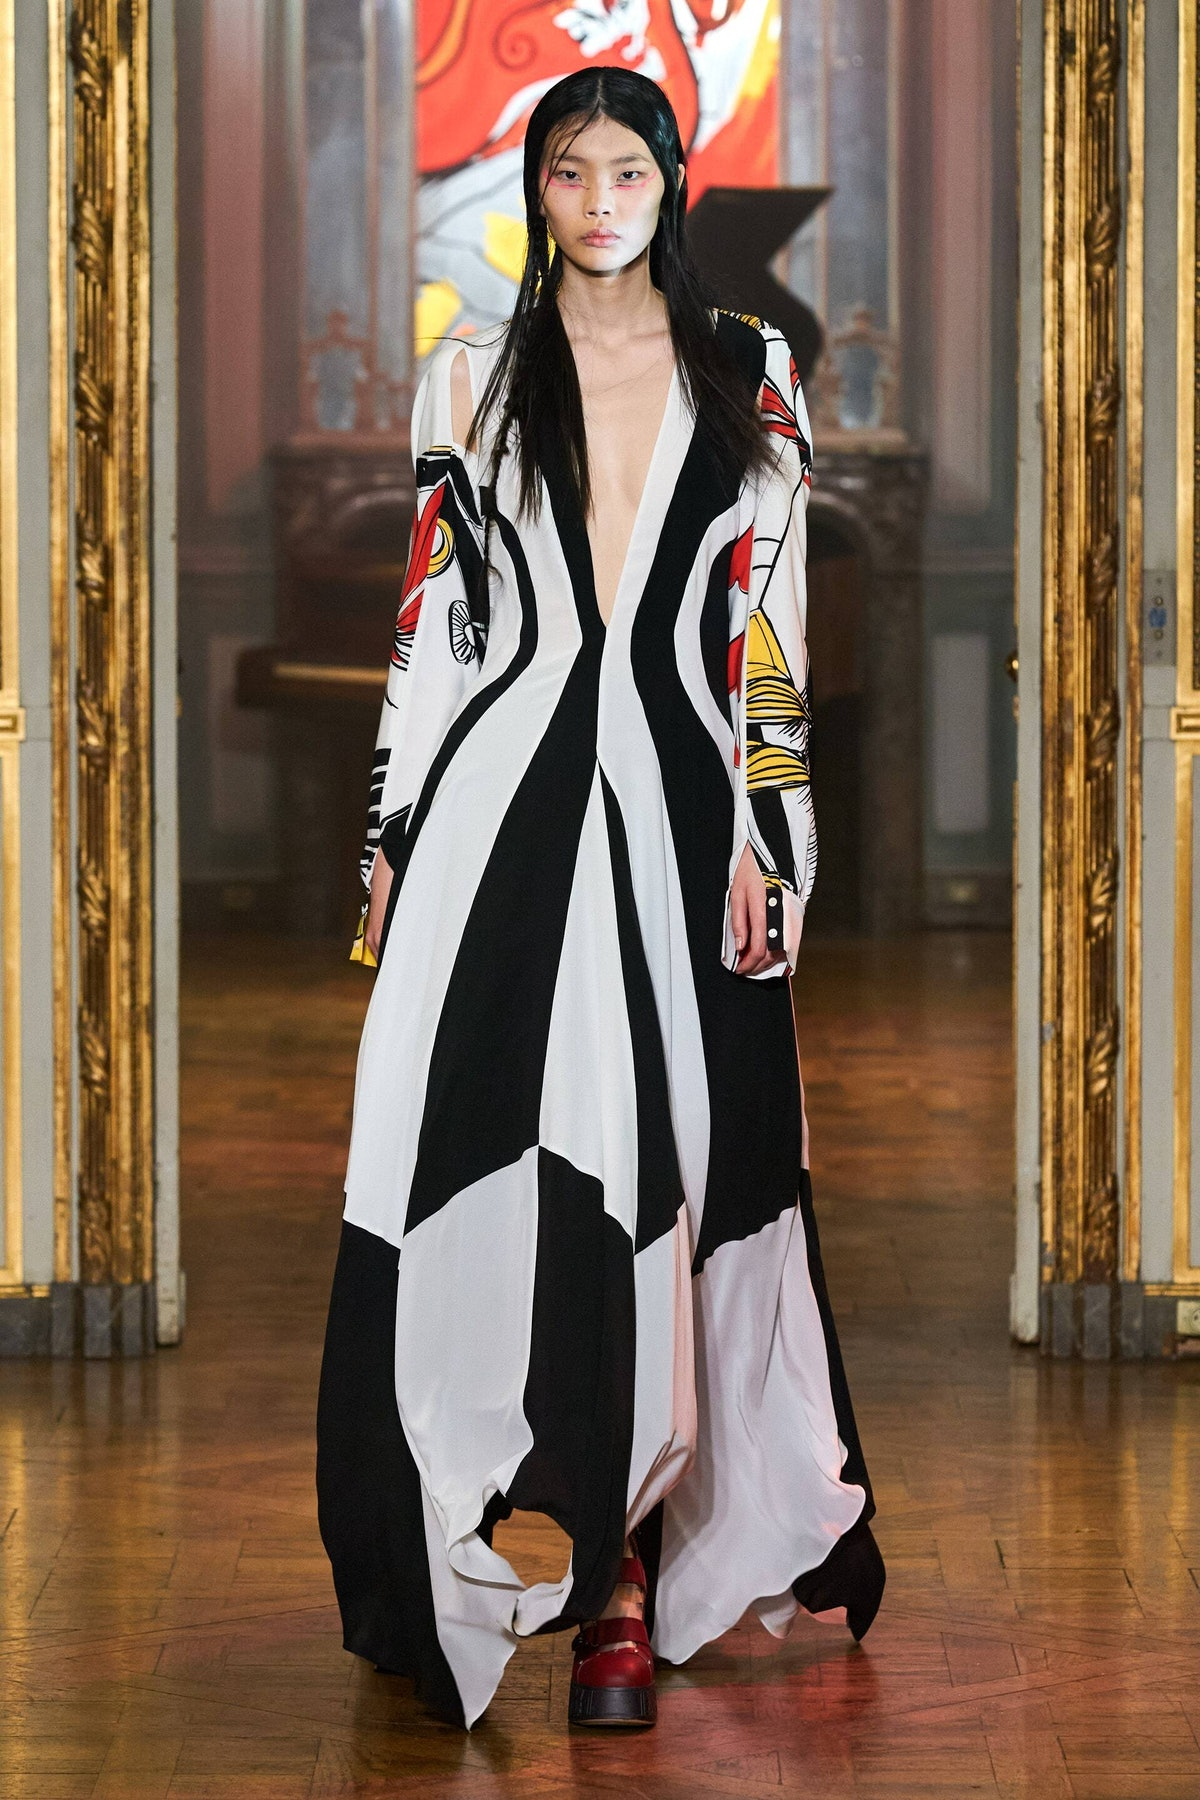 model in black and white rochas look spring 2022